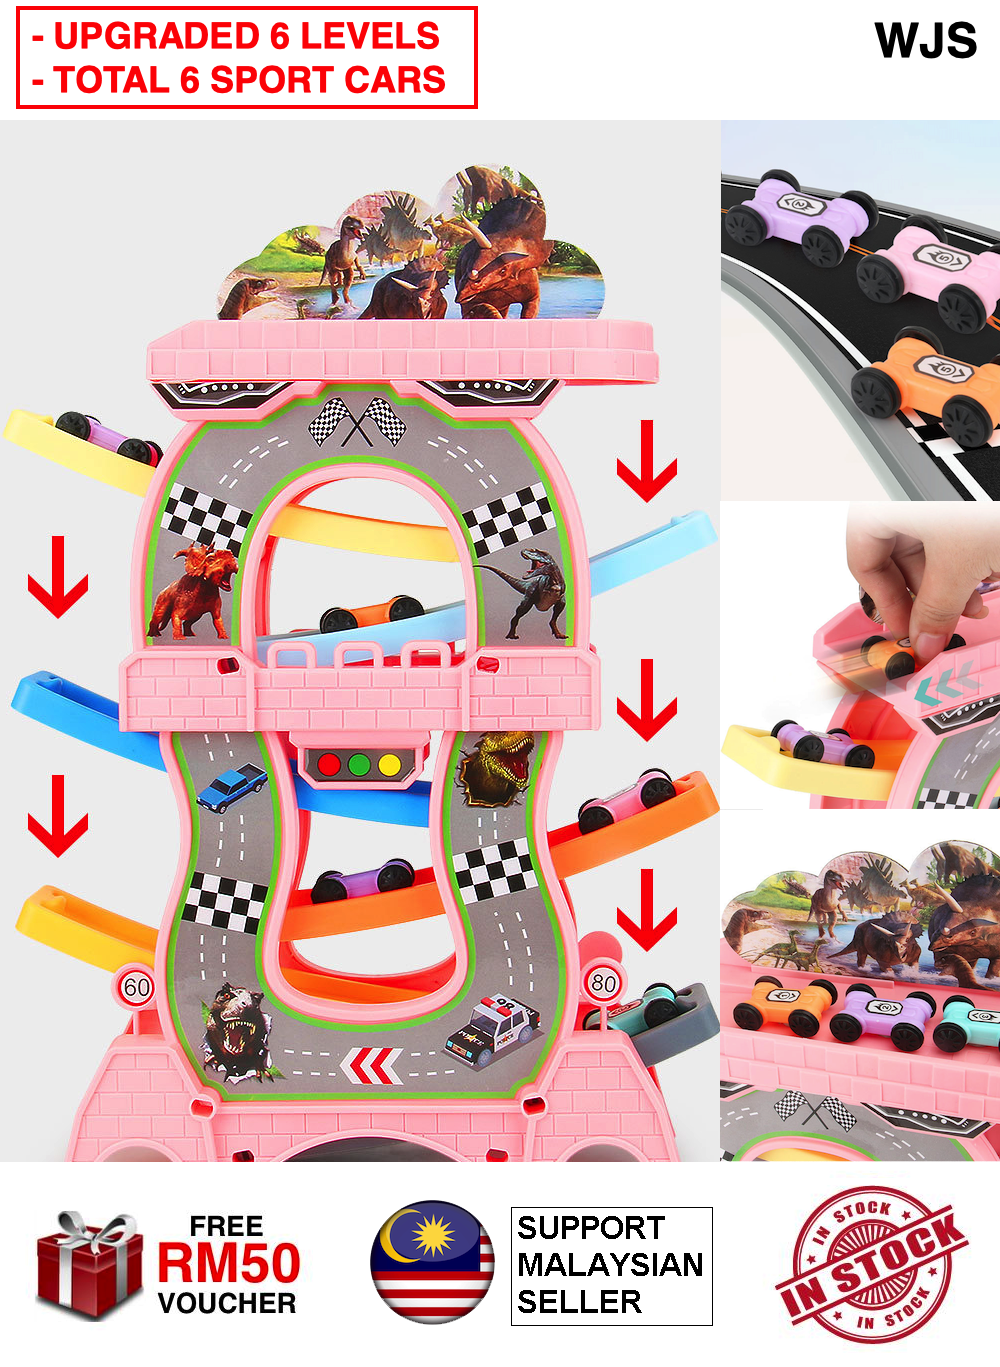 (6 LEVELS + 6 CARS) WJS Gliding Car Ladder Track Car Toys Children 4 Level Sliding Track Game Kids & Baby Early Learning Educational Toy Car Track Cars Kereta Lumba PINK TURQUOISE [FREE RM 50 VOUCHER]